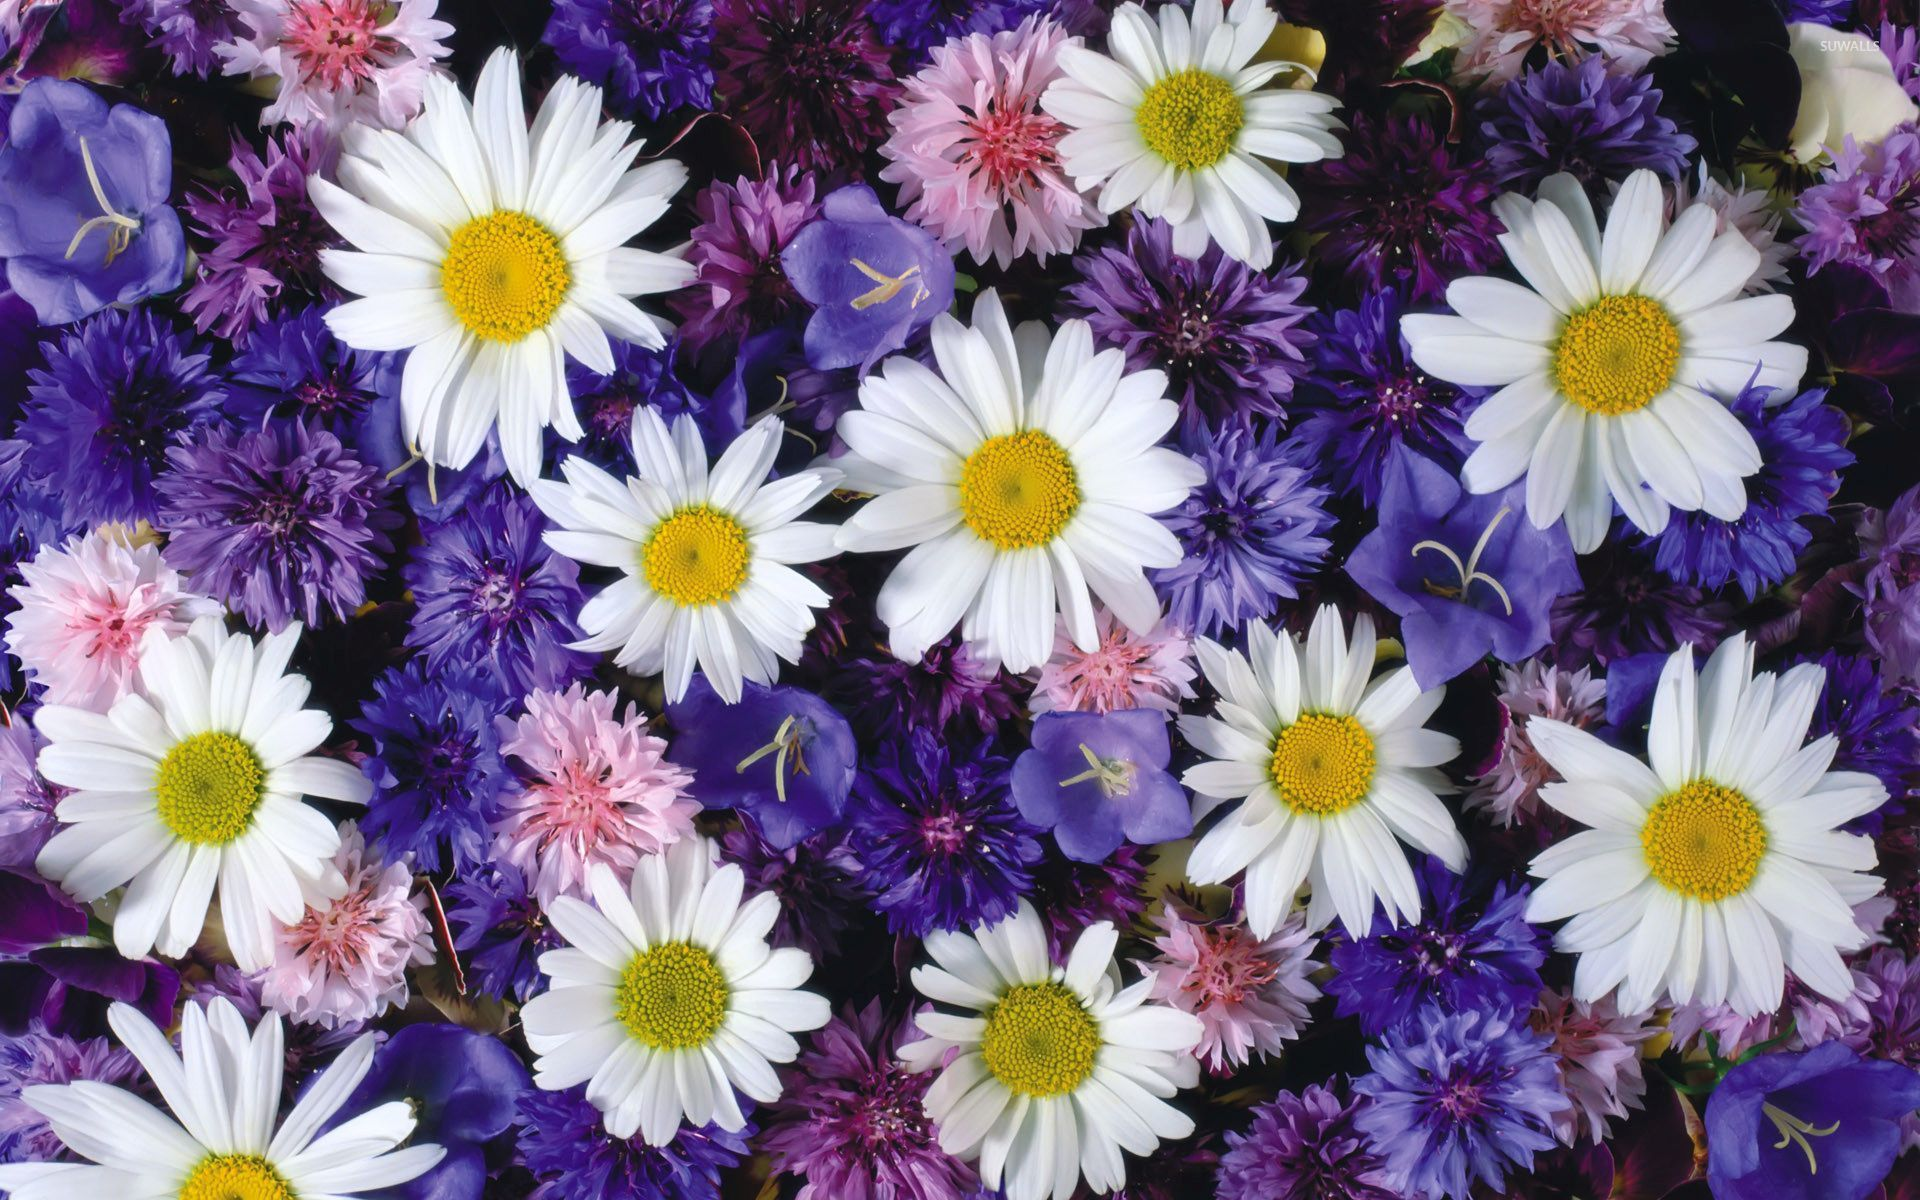 White Daisies Between The Purple Flowers Wallpaper Flower